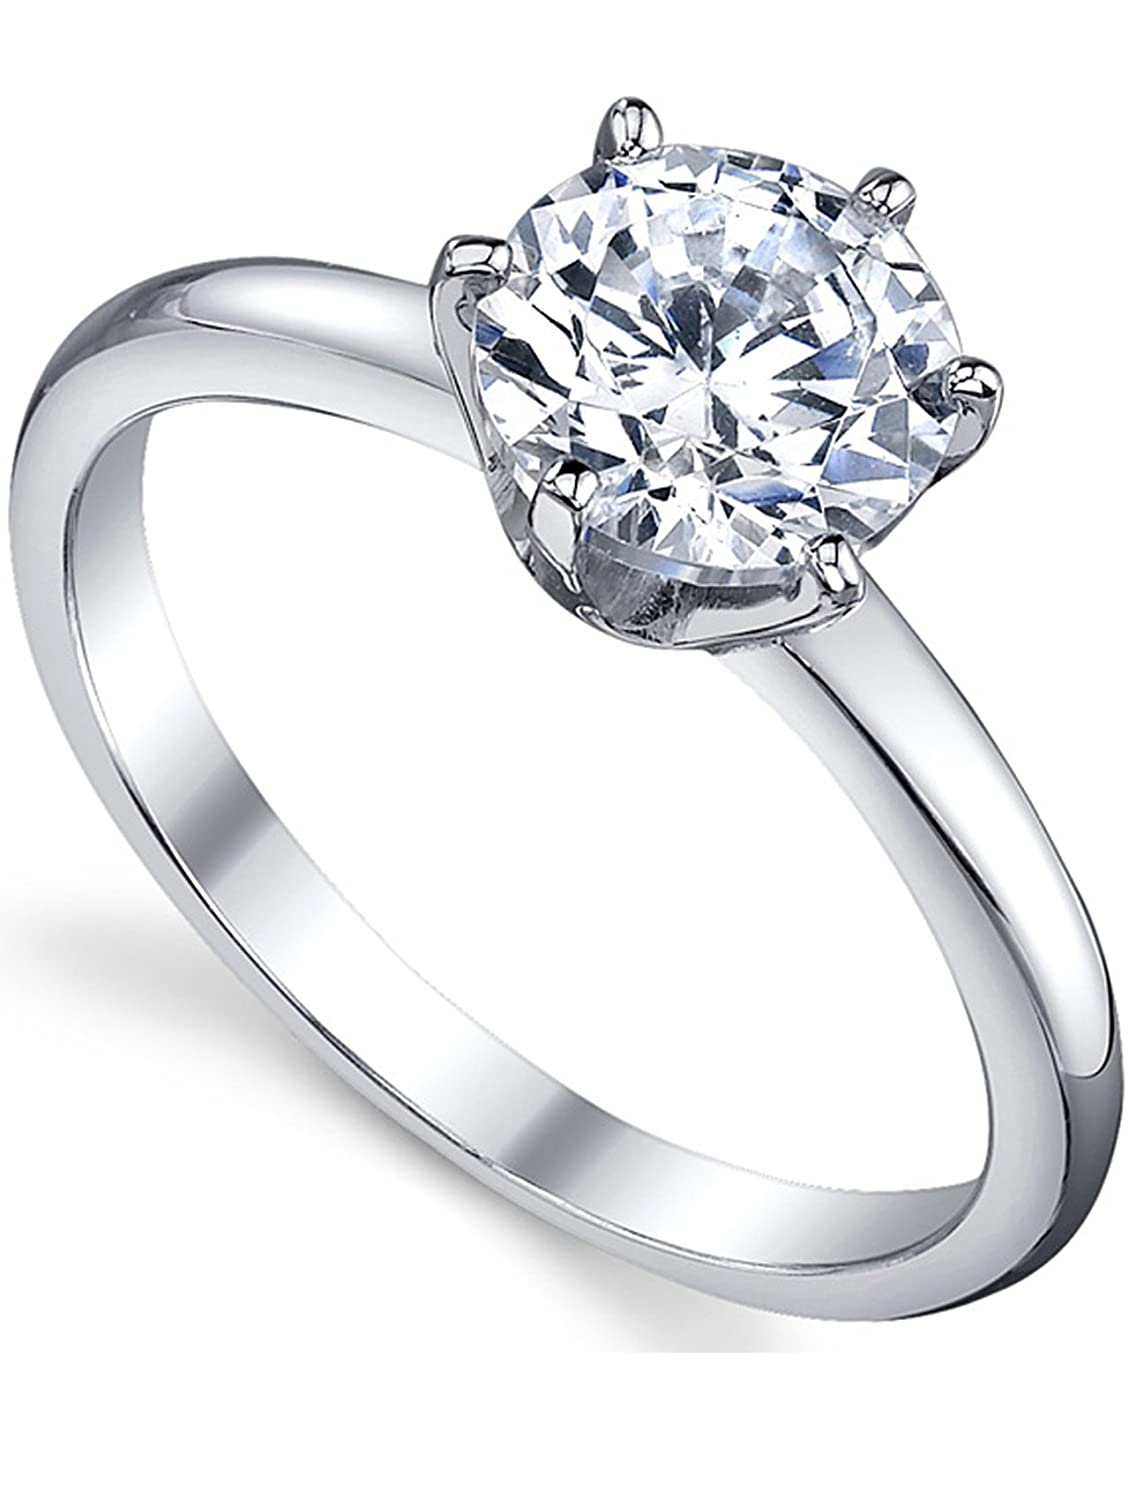 Travel Ring Promise Ring 1.25 Ct Round Brilliant Cut Fine Quality Cubic Zirconia Engagement Ring In Sterling Silver Proposal Ring